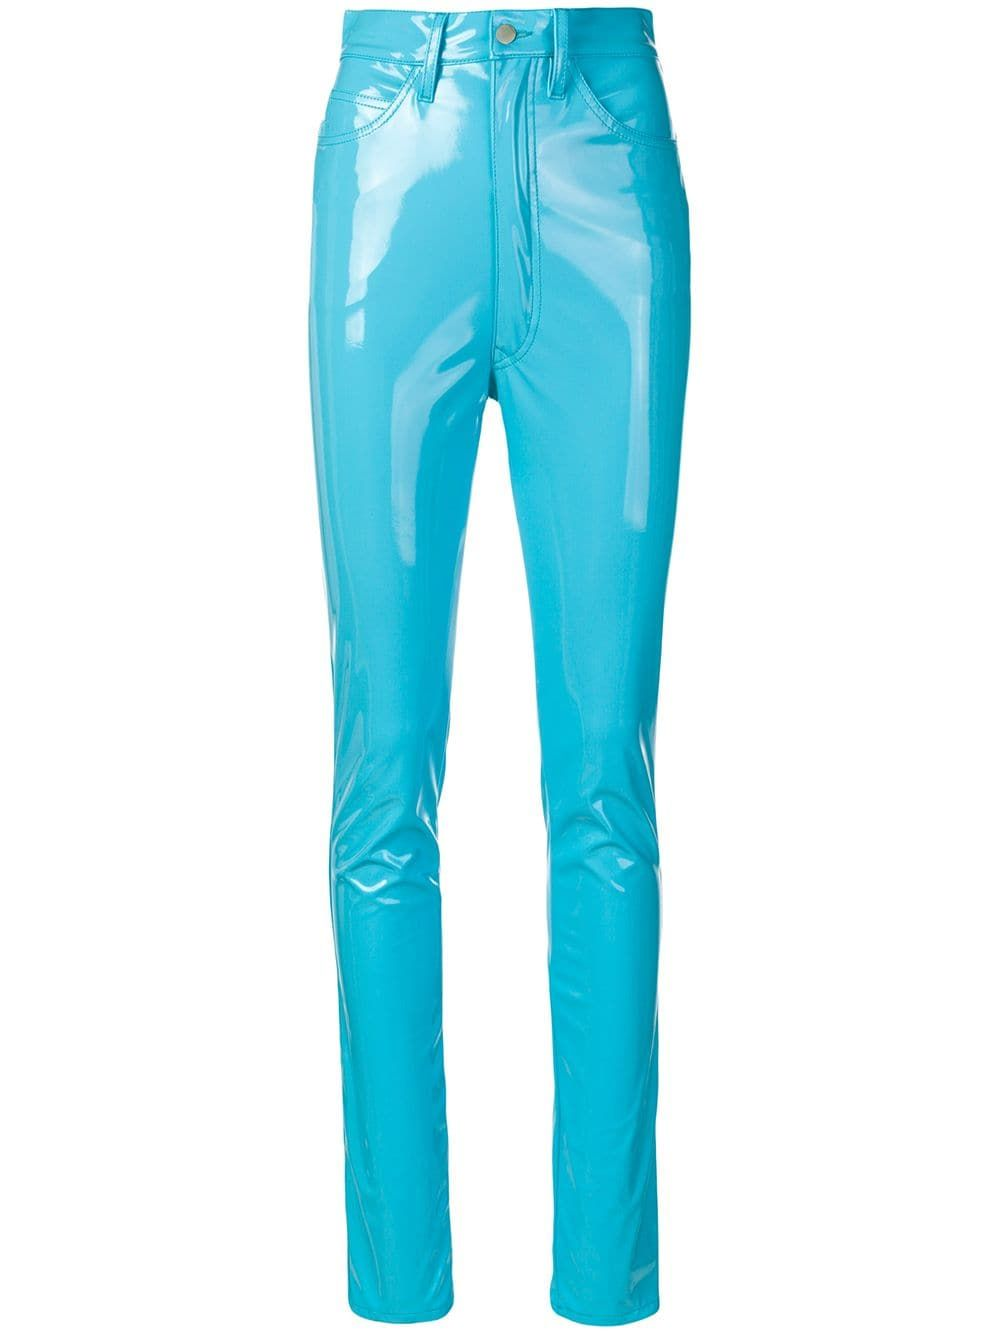 f531fba4a8b Maison Margiela high-waisted trousers - Blue in 2019 | Products ...